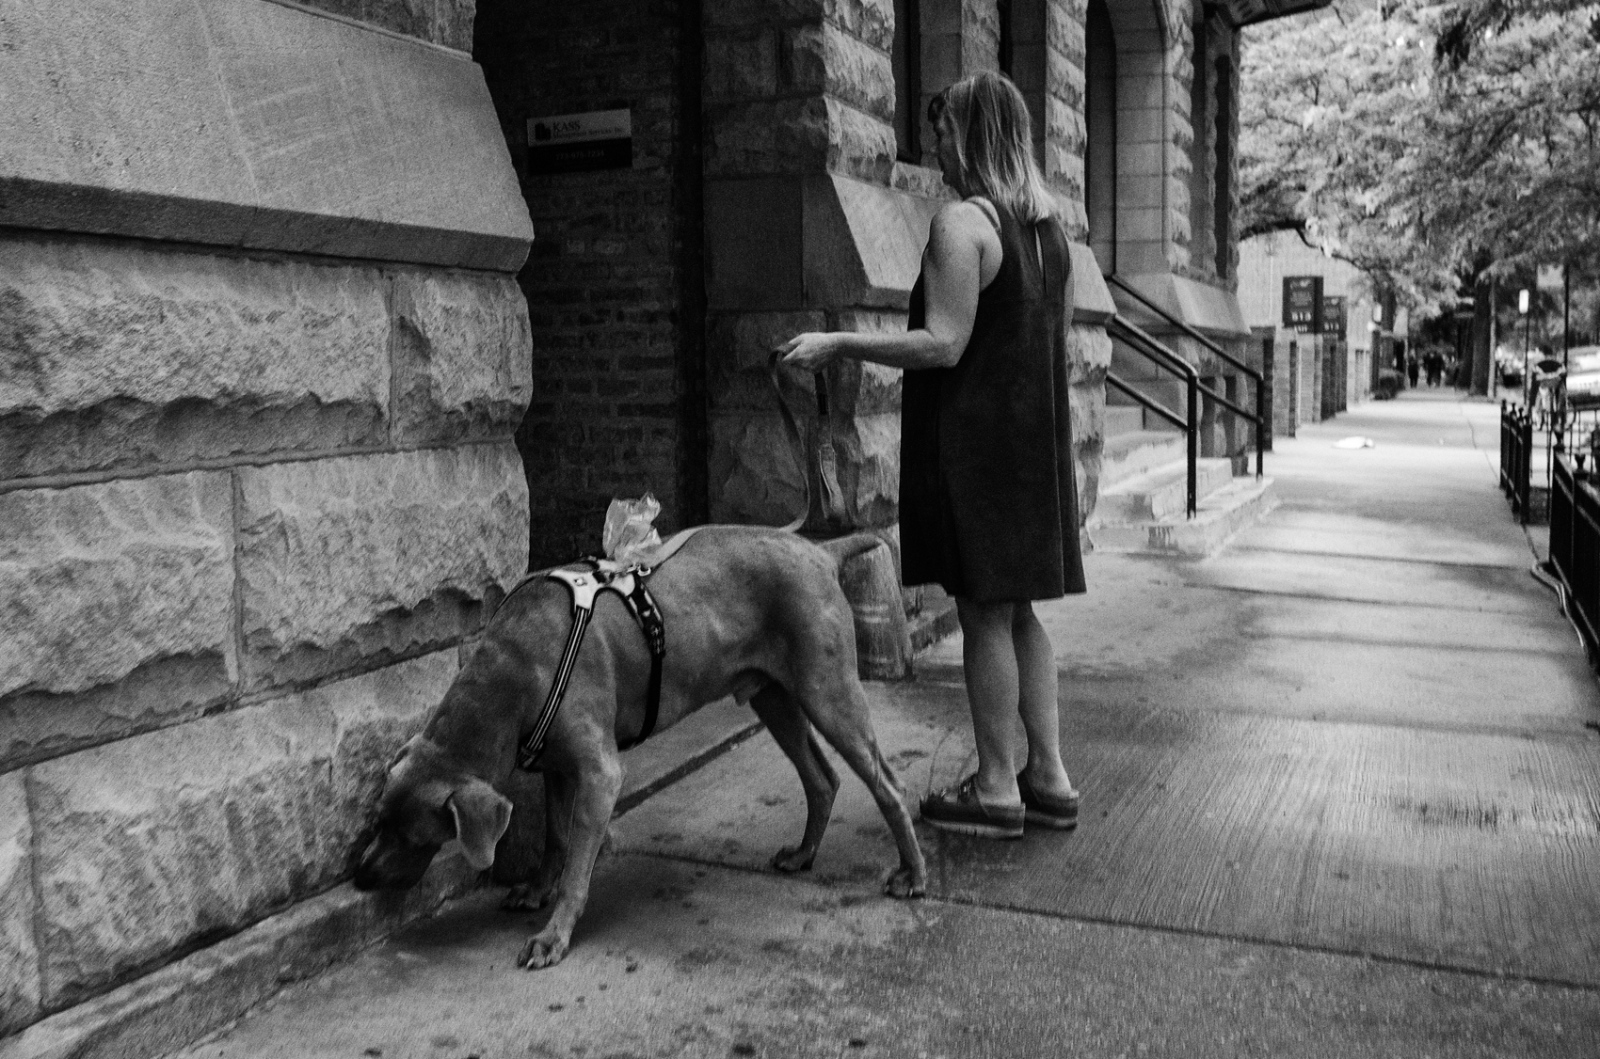 Woman with dog on Fullerton, Chicago 2017